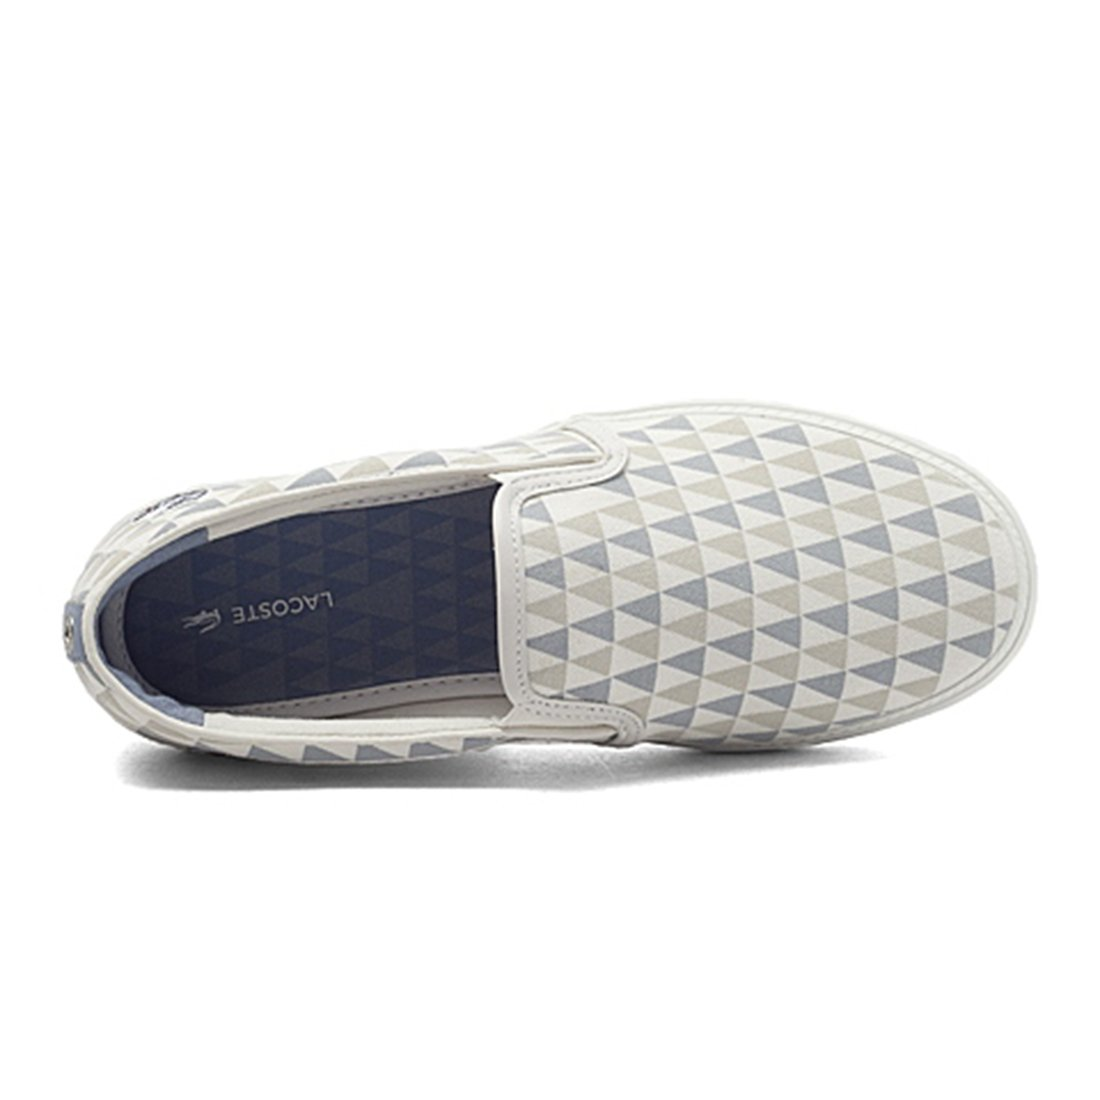 53337c6eaea2 Lacoste Womens Pumps Casual Slip On Trainers Lightweight Summer Shoes   Amazon.co.uk  Shoes   Bags